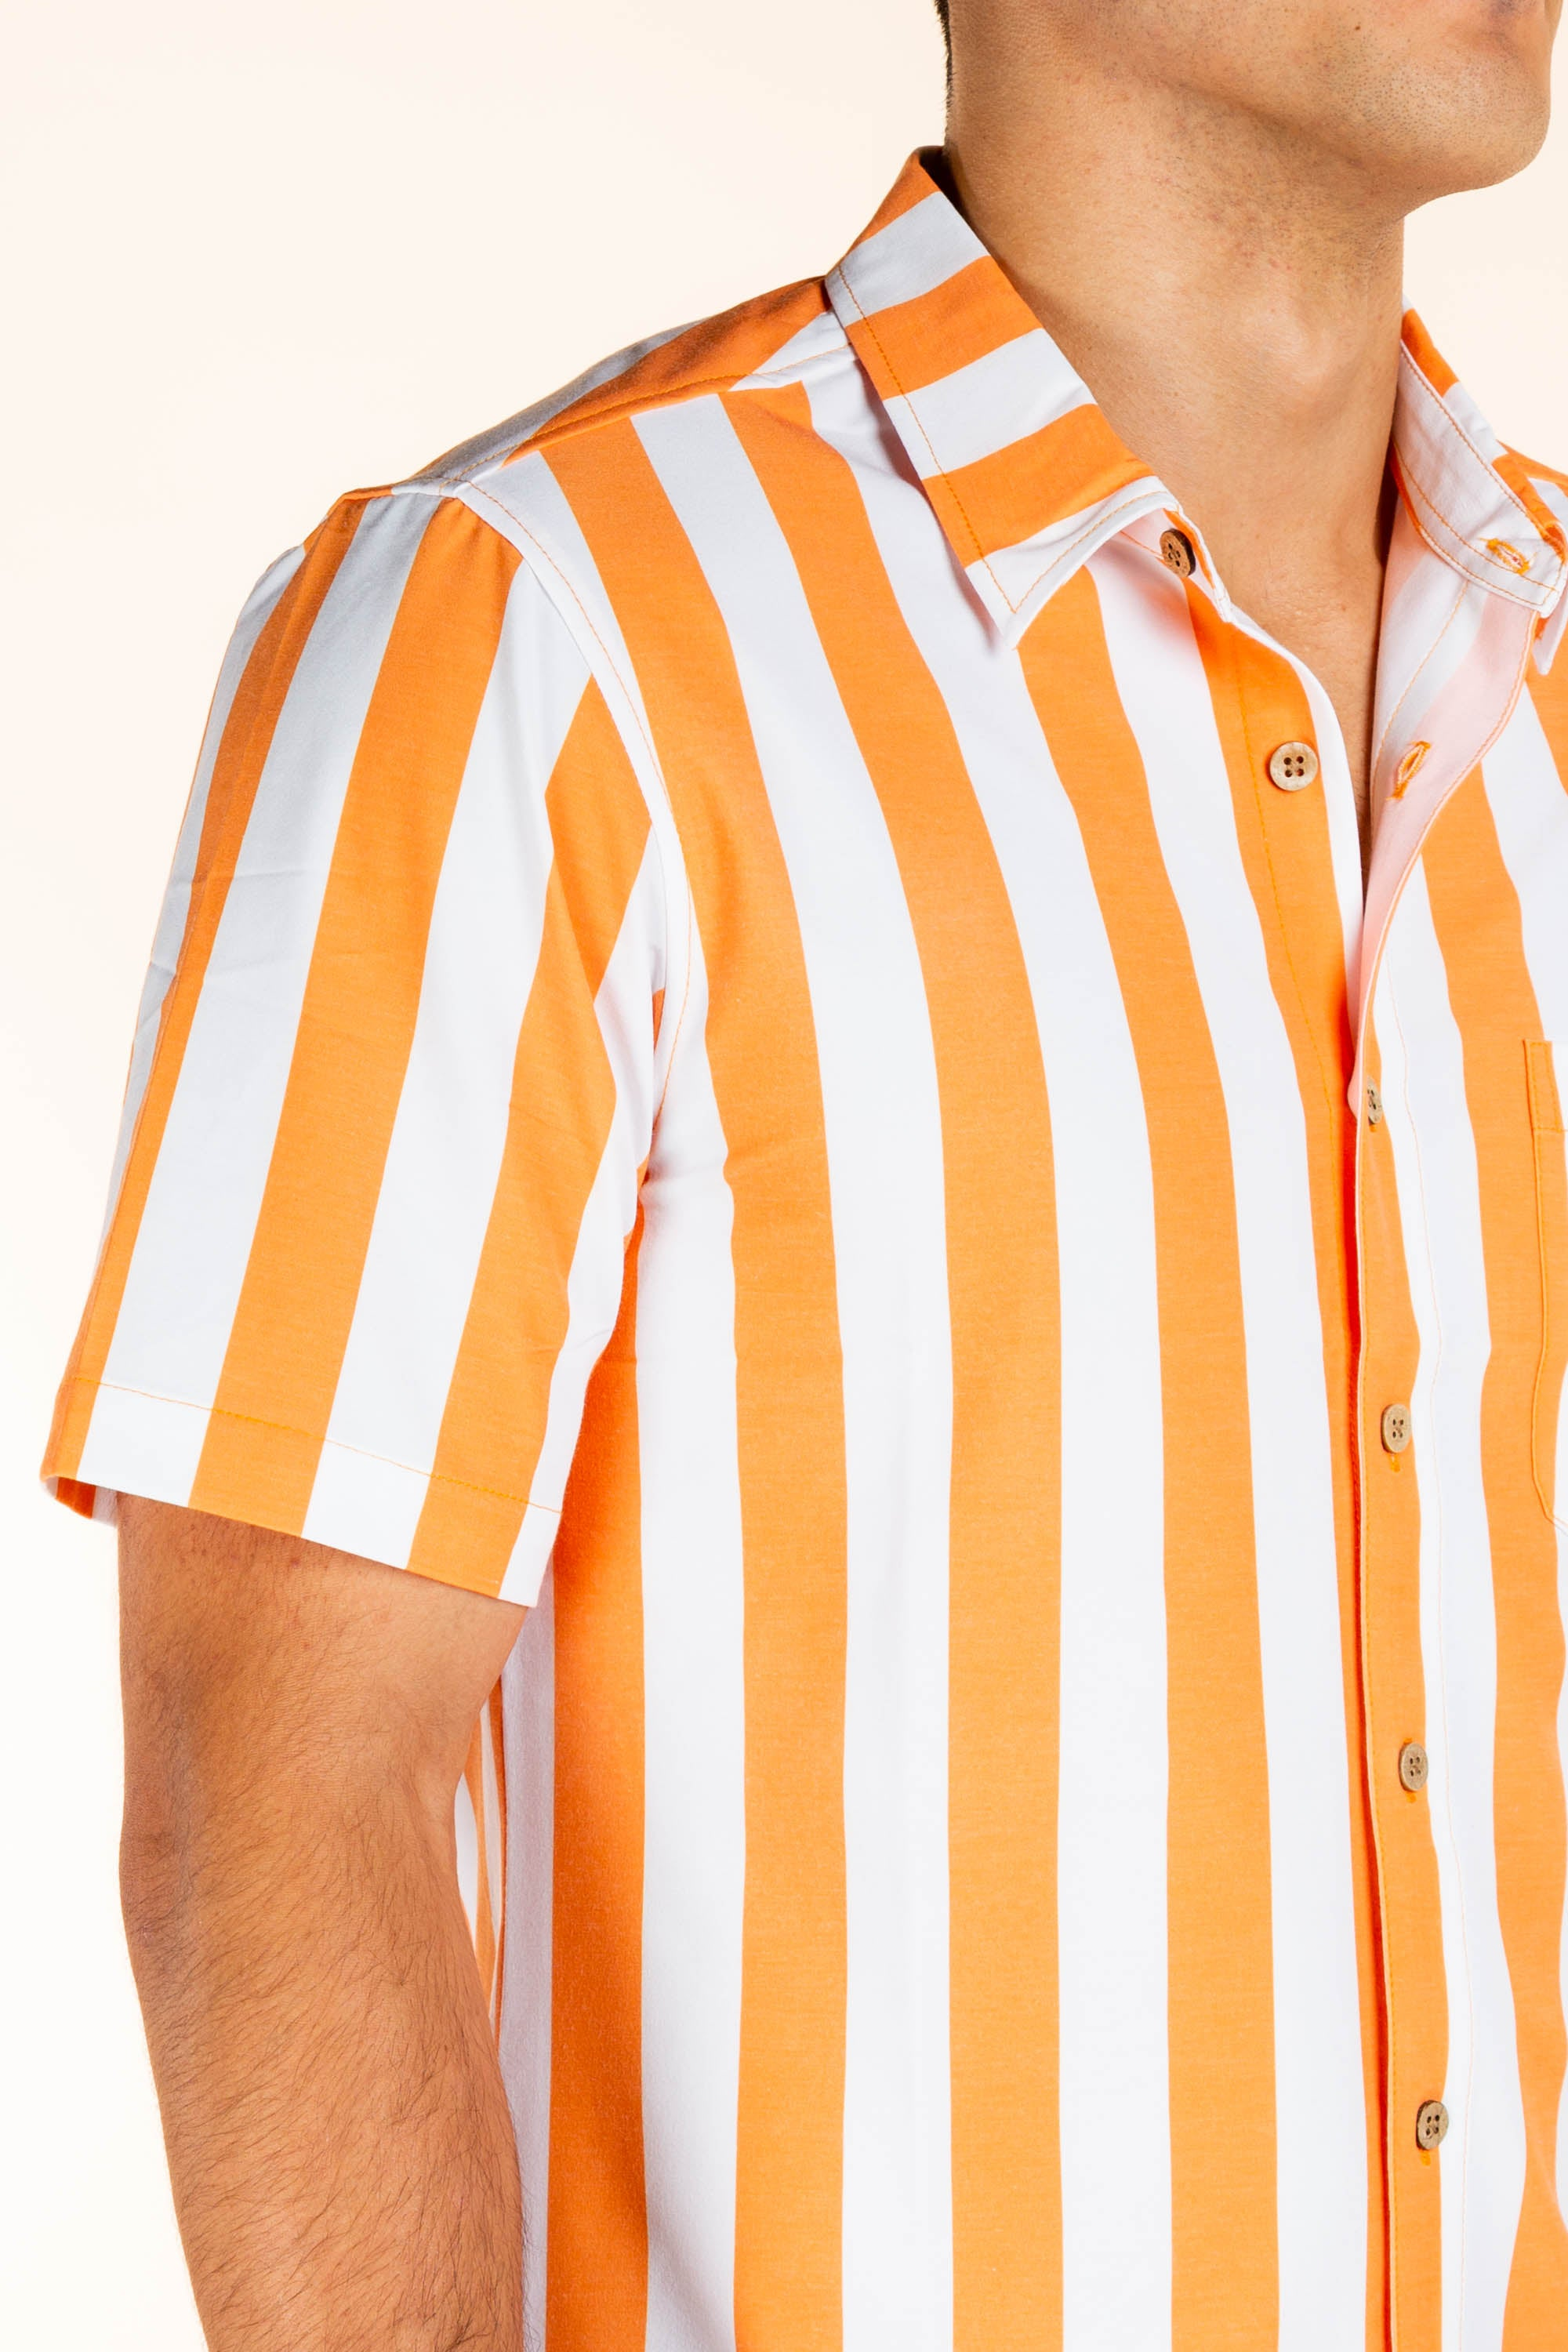 University of Tennessee Striped Button Up Shirt